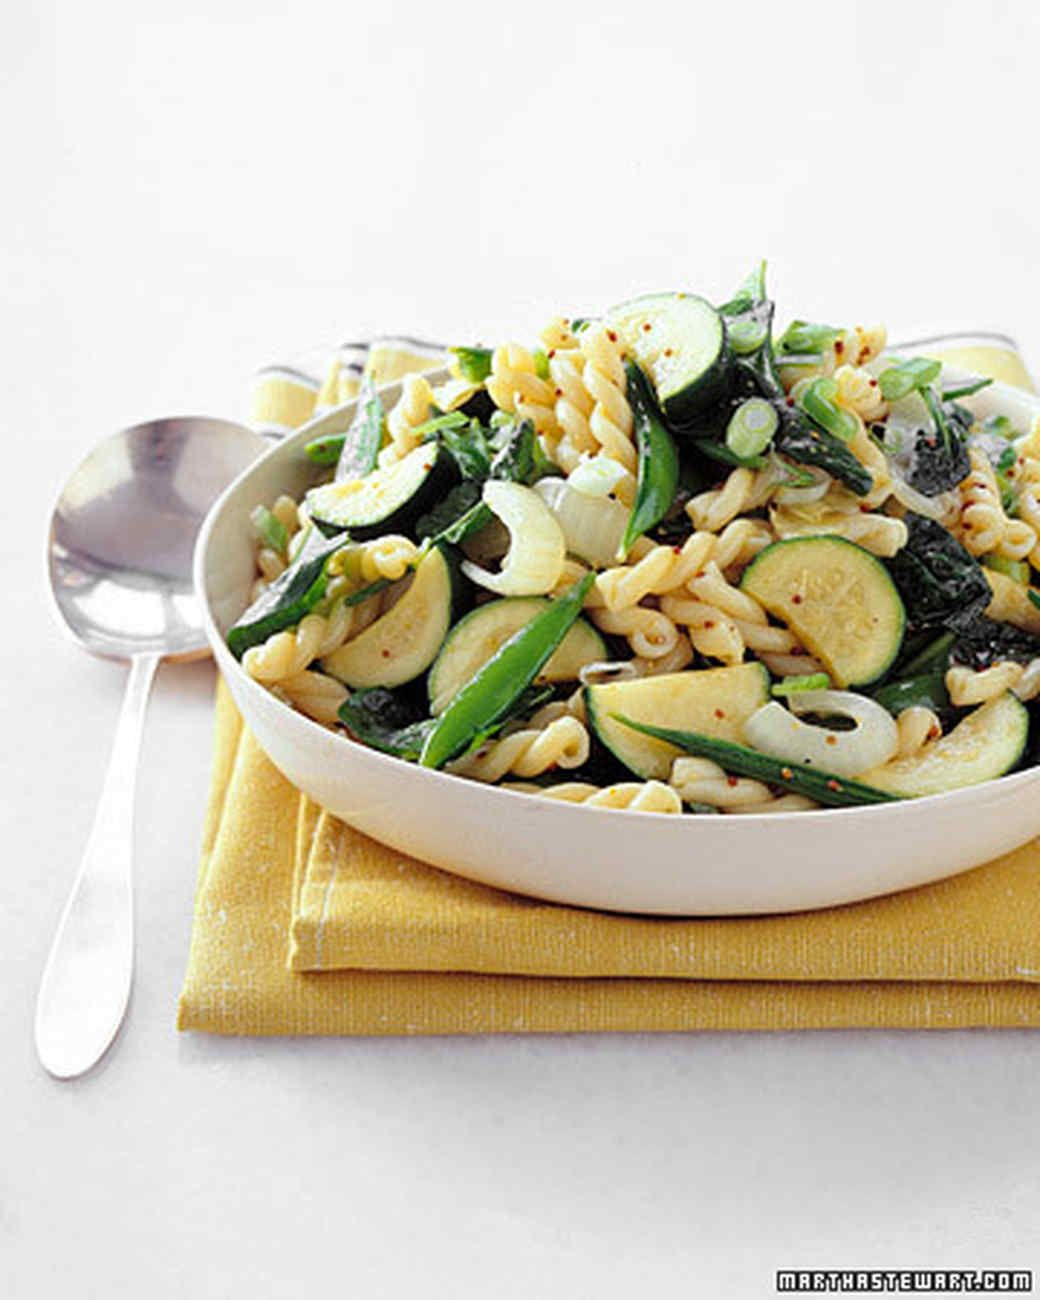 A medley of greens -- zucchini, snap peas, baby spinach, scallions -- combines with a simple mustard vinaigrette to create this appealing pasta salad.